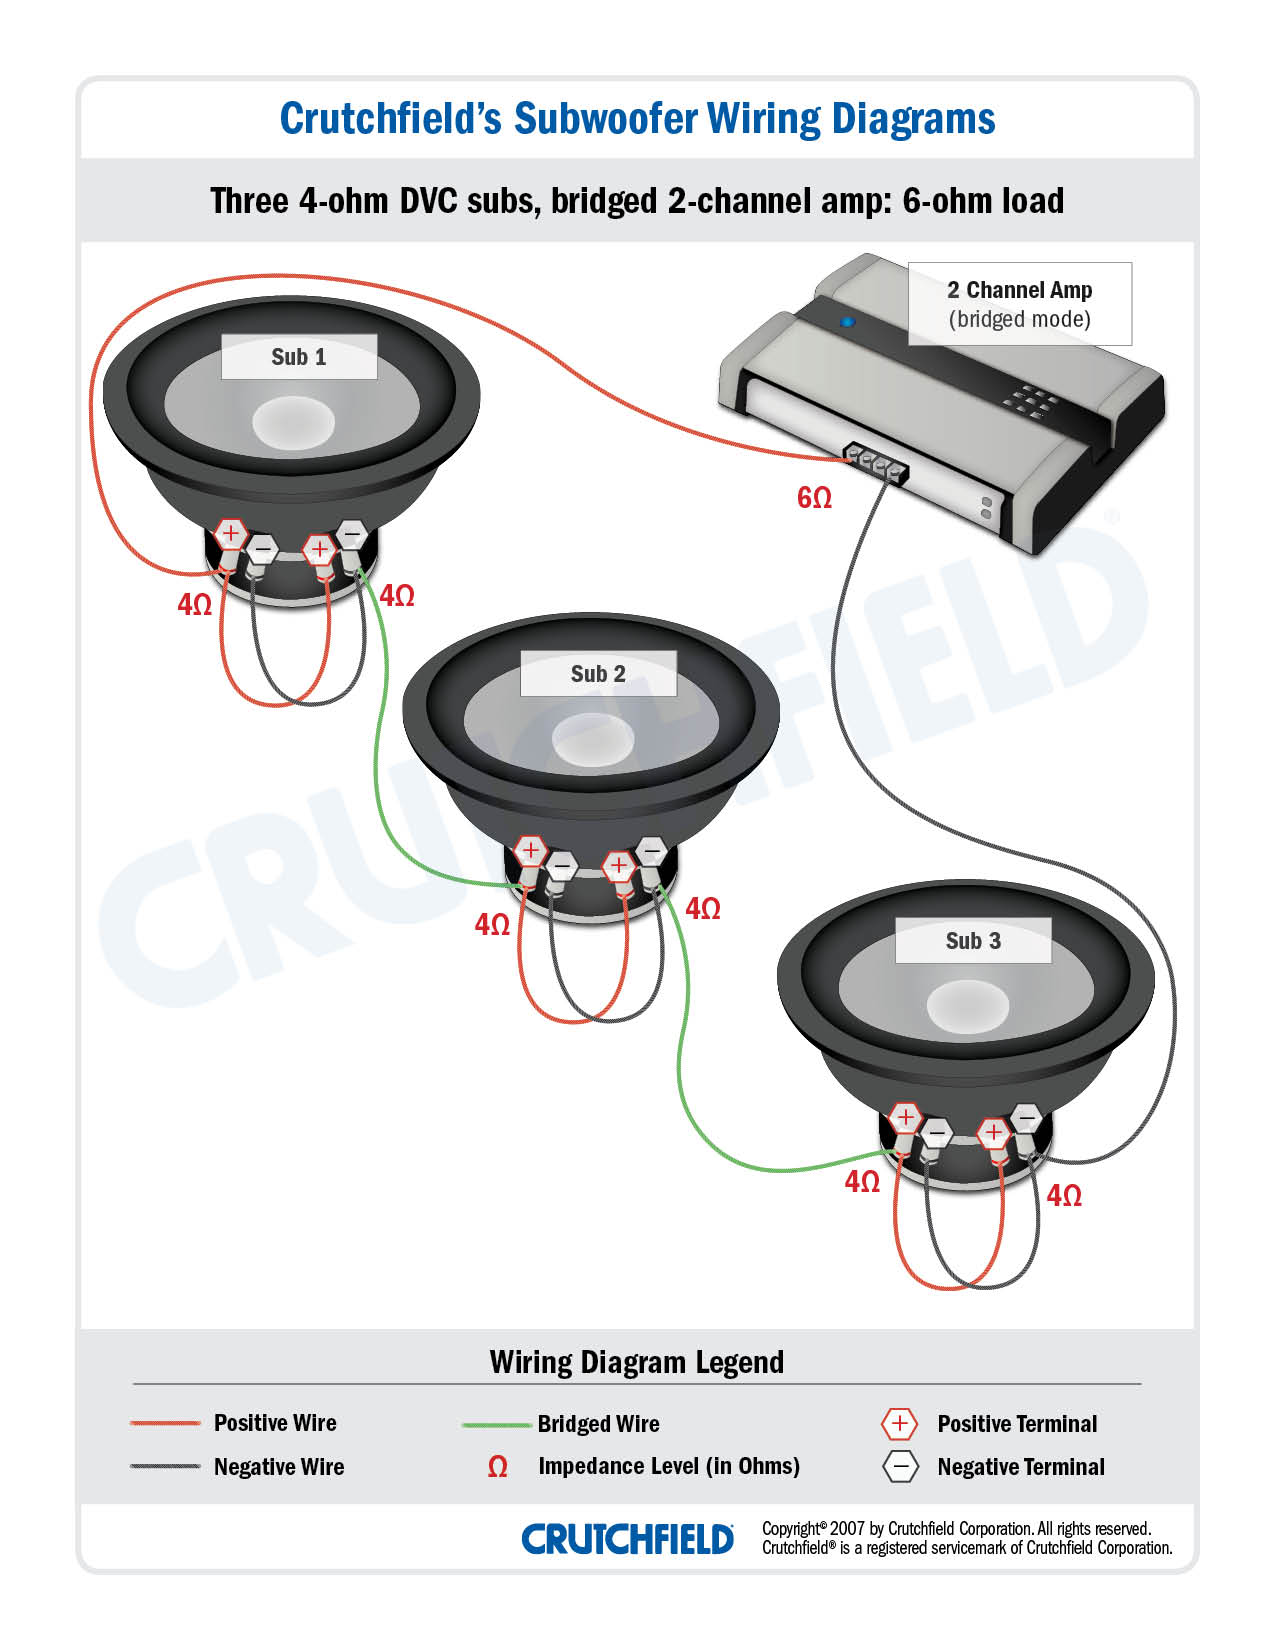 3 DVC 4 ohm 2 ch subwoofer wiring diagrams dual 4 ohm voice coil wiring diagram at mifinder.co